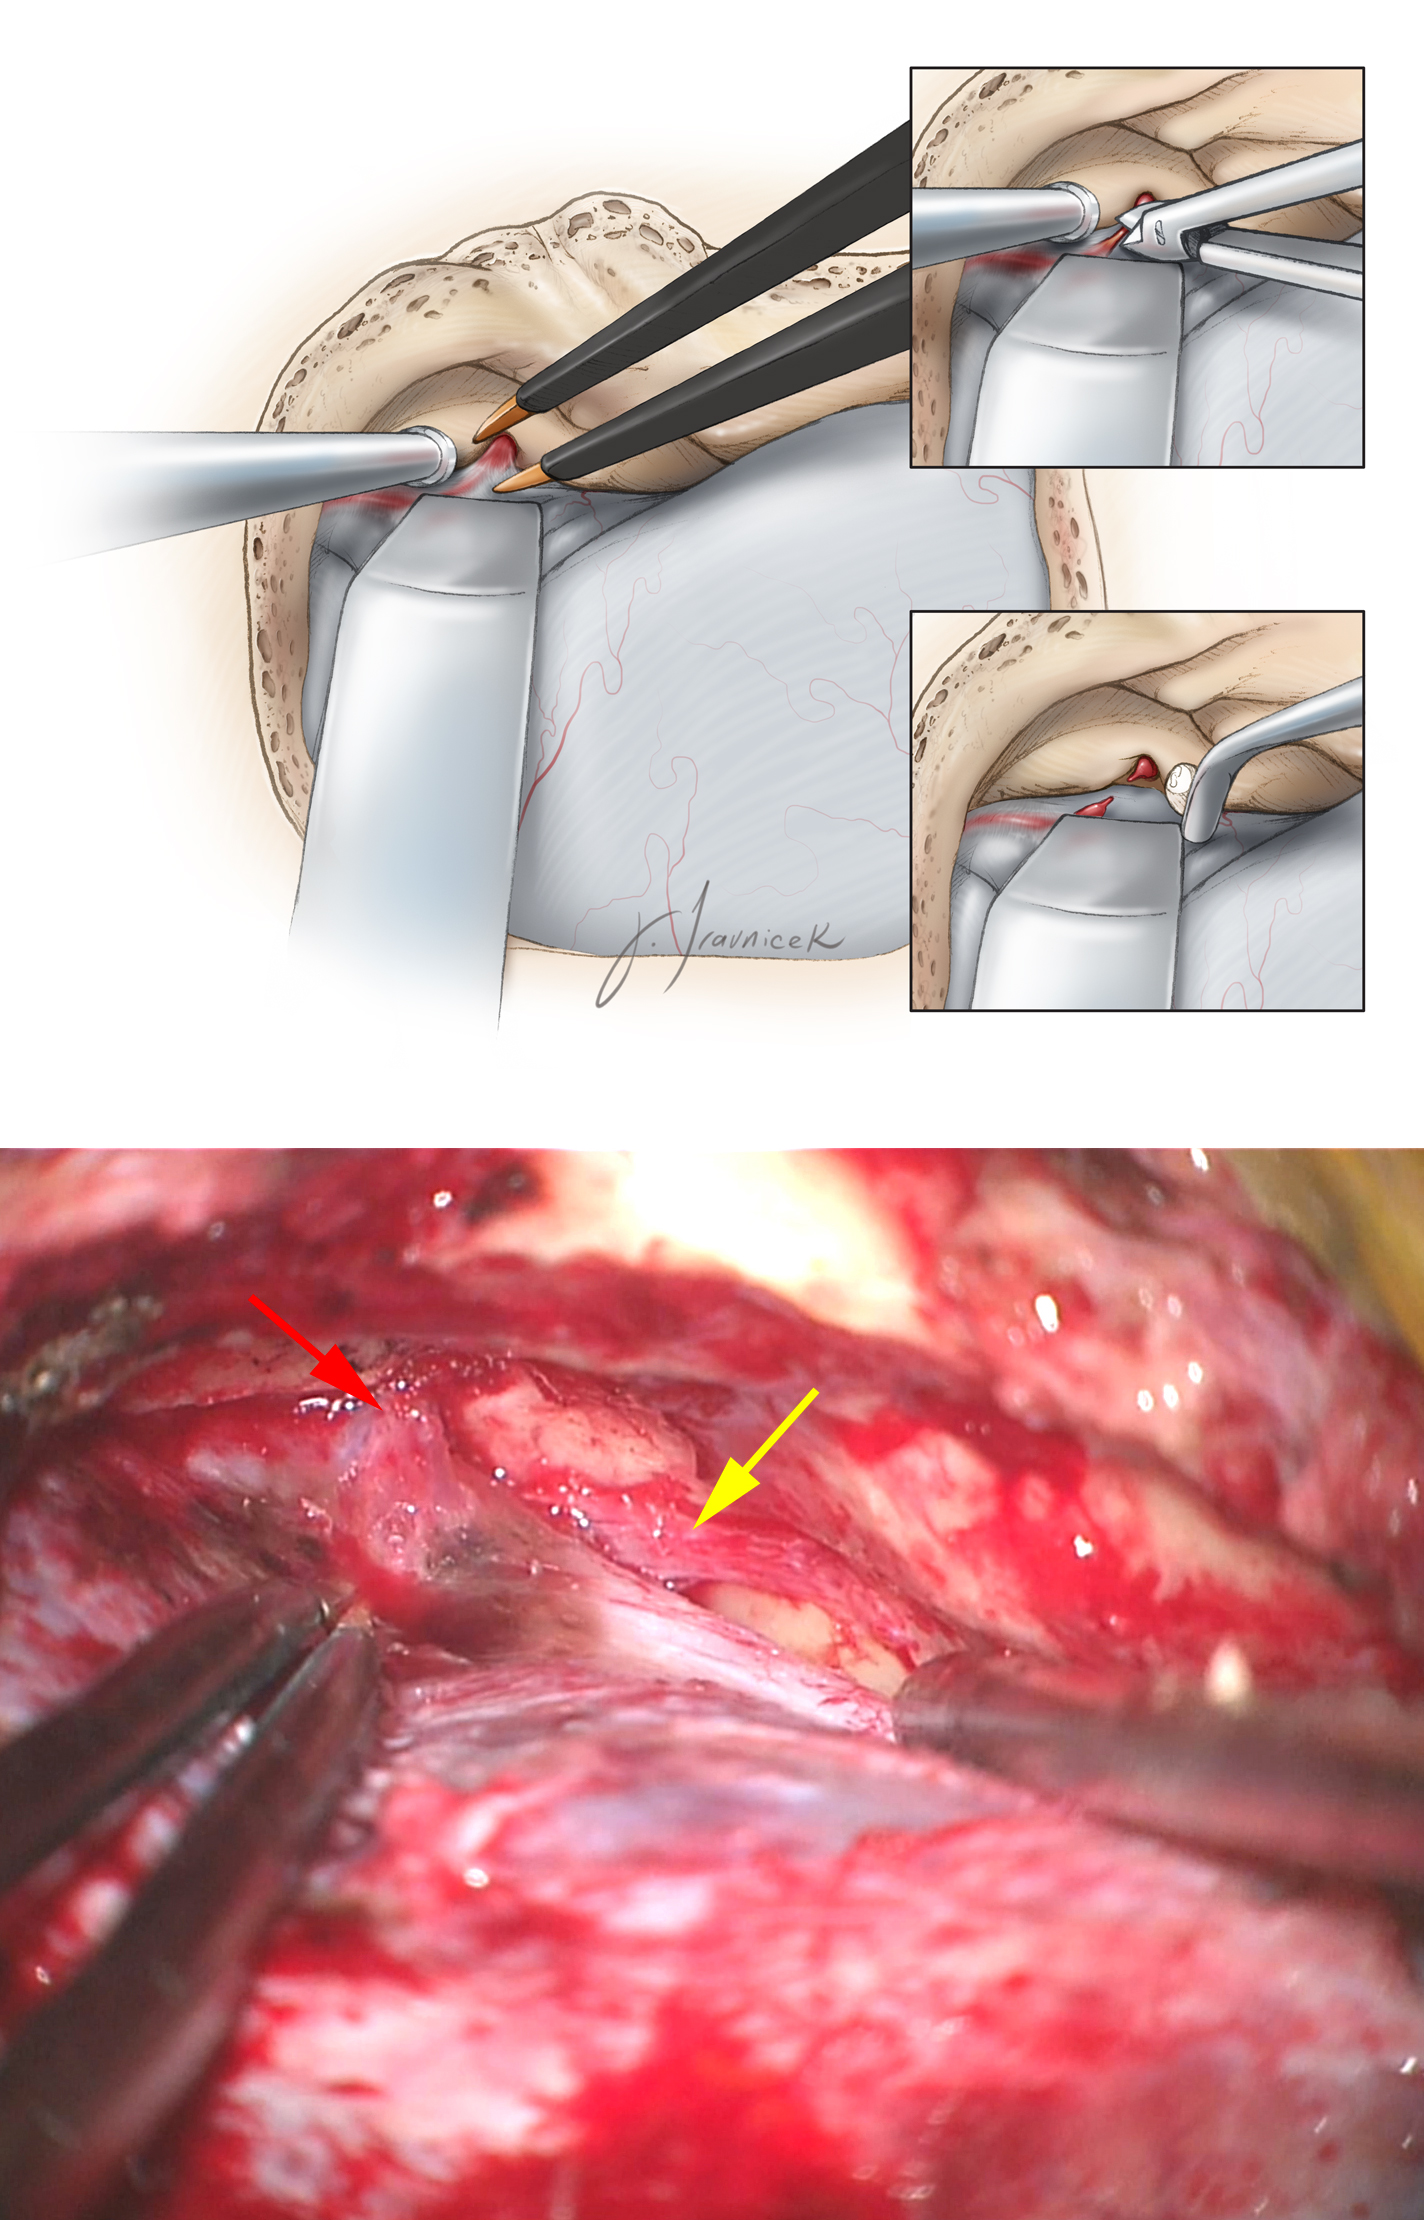 Figure 11: The dura over the floor of the anterior aspect of the middle fossa is now generously elevated. The middle meningeal artery (red arrow), entering through the foramen spinosum, is identified along the anterior aspect of the bone exposure. The artery must be coagulated on its dural side and transected. Next, I pack the foramen with bone wax and oxidized cellulose. Stripping of the dura anteriorly must stop at this point to avoid direct injury to the greater (GSPN)(yellow arrow) and lesser superficial petrosal nerves (LSPN), leading potentially to dry eyes. Inadvertent traction on the GSPN will also place the facial nerve at risk.  The surgeon can minimize the risk of this type of injury by lifting the dura in a posterior-to-anterior direction.